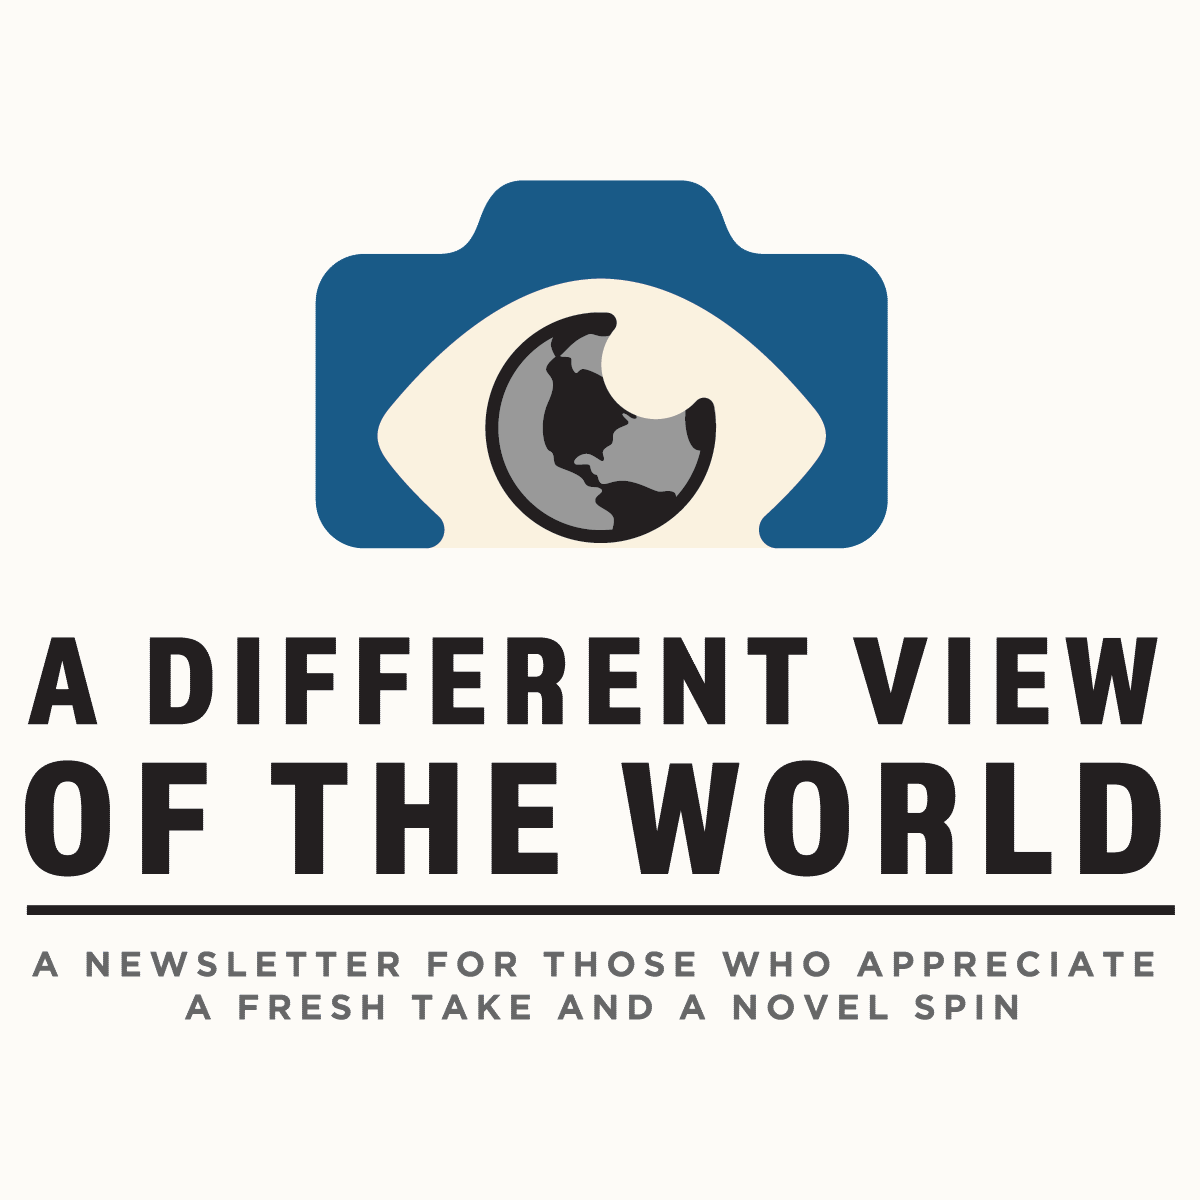 A Different View of the World